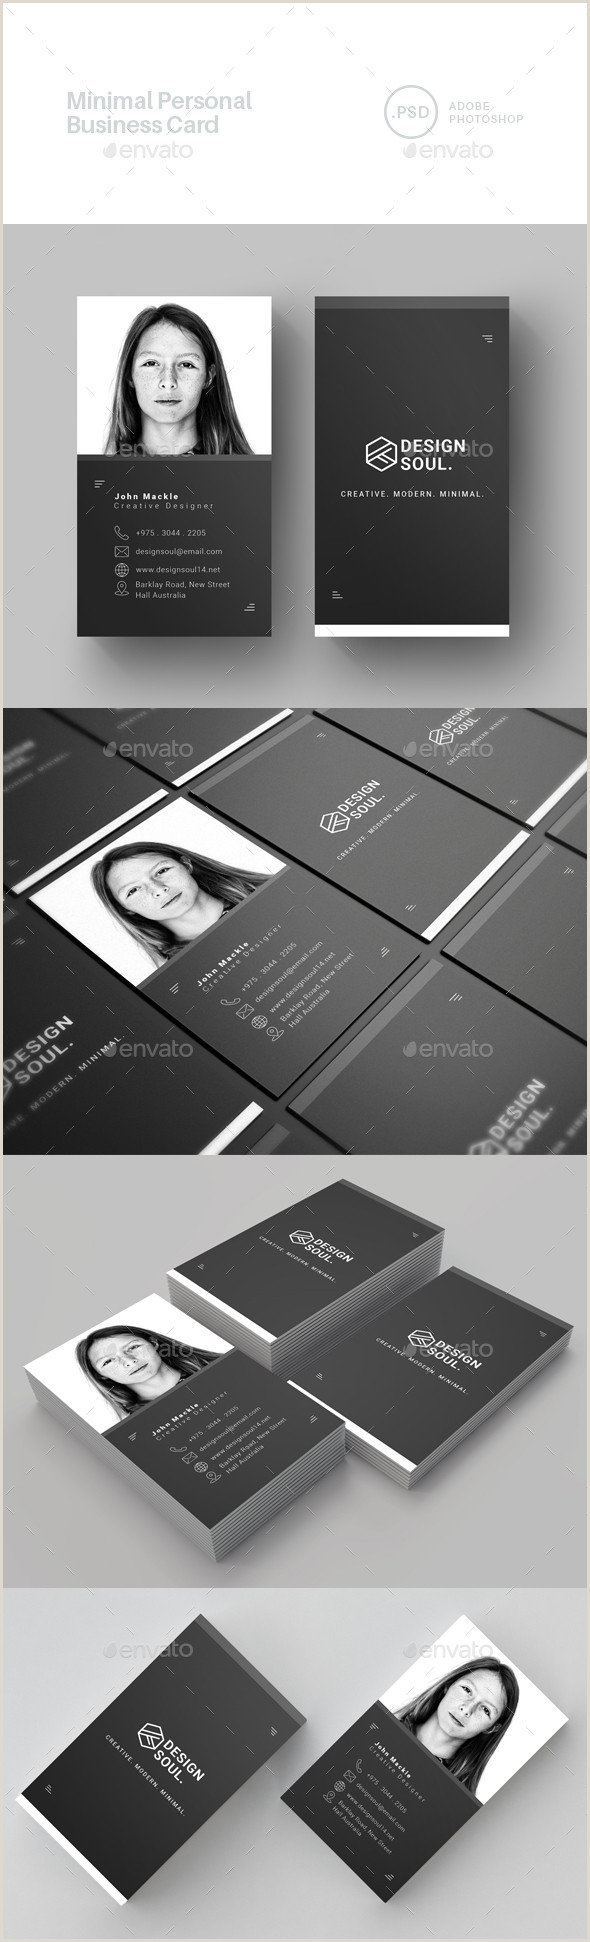 Order Personal Business Cards Personal Business Card Templates & Designs From Graphicriver